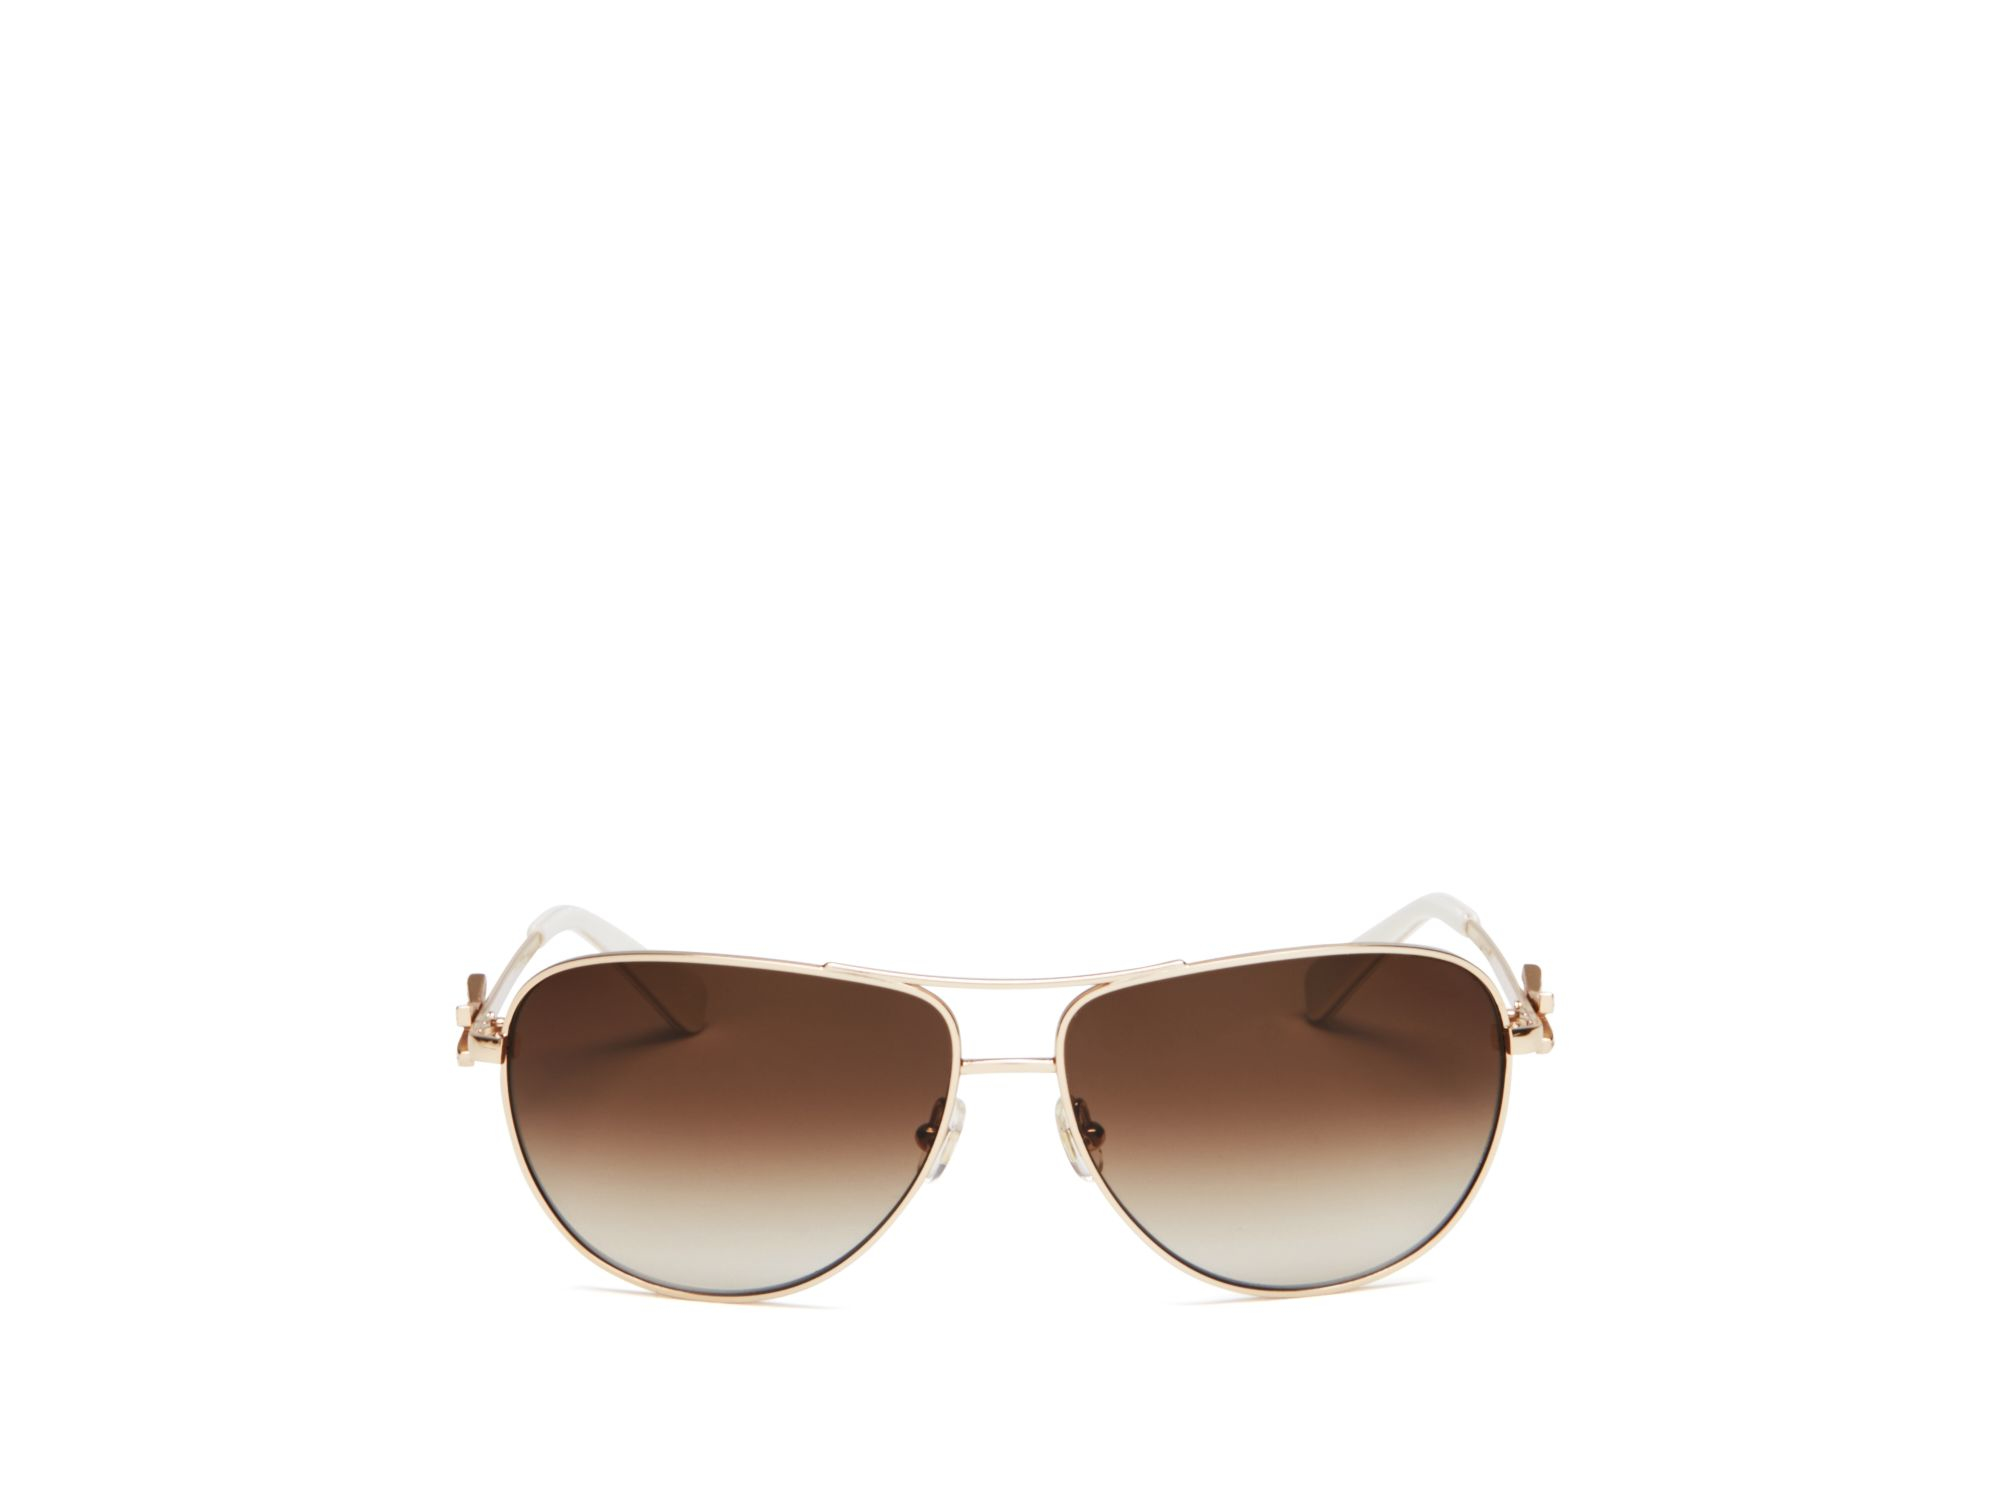 753d04239d Lyst - Kate Spade New York Circe Aviator Sunglasses